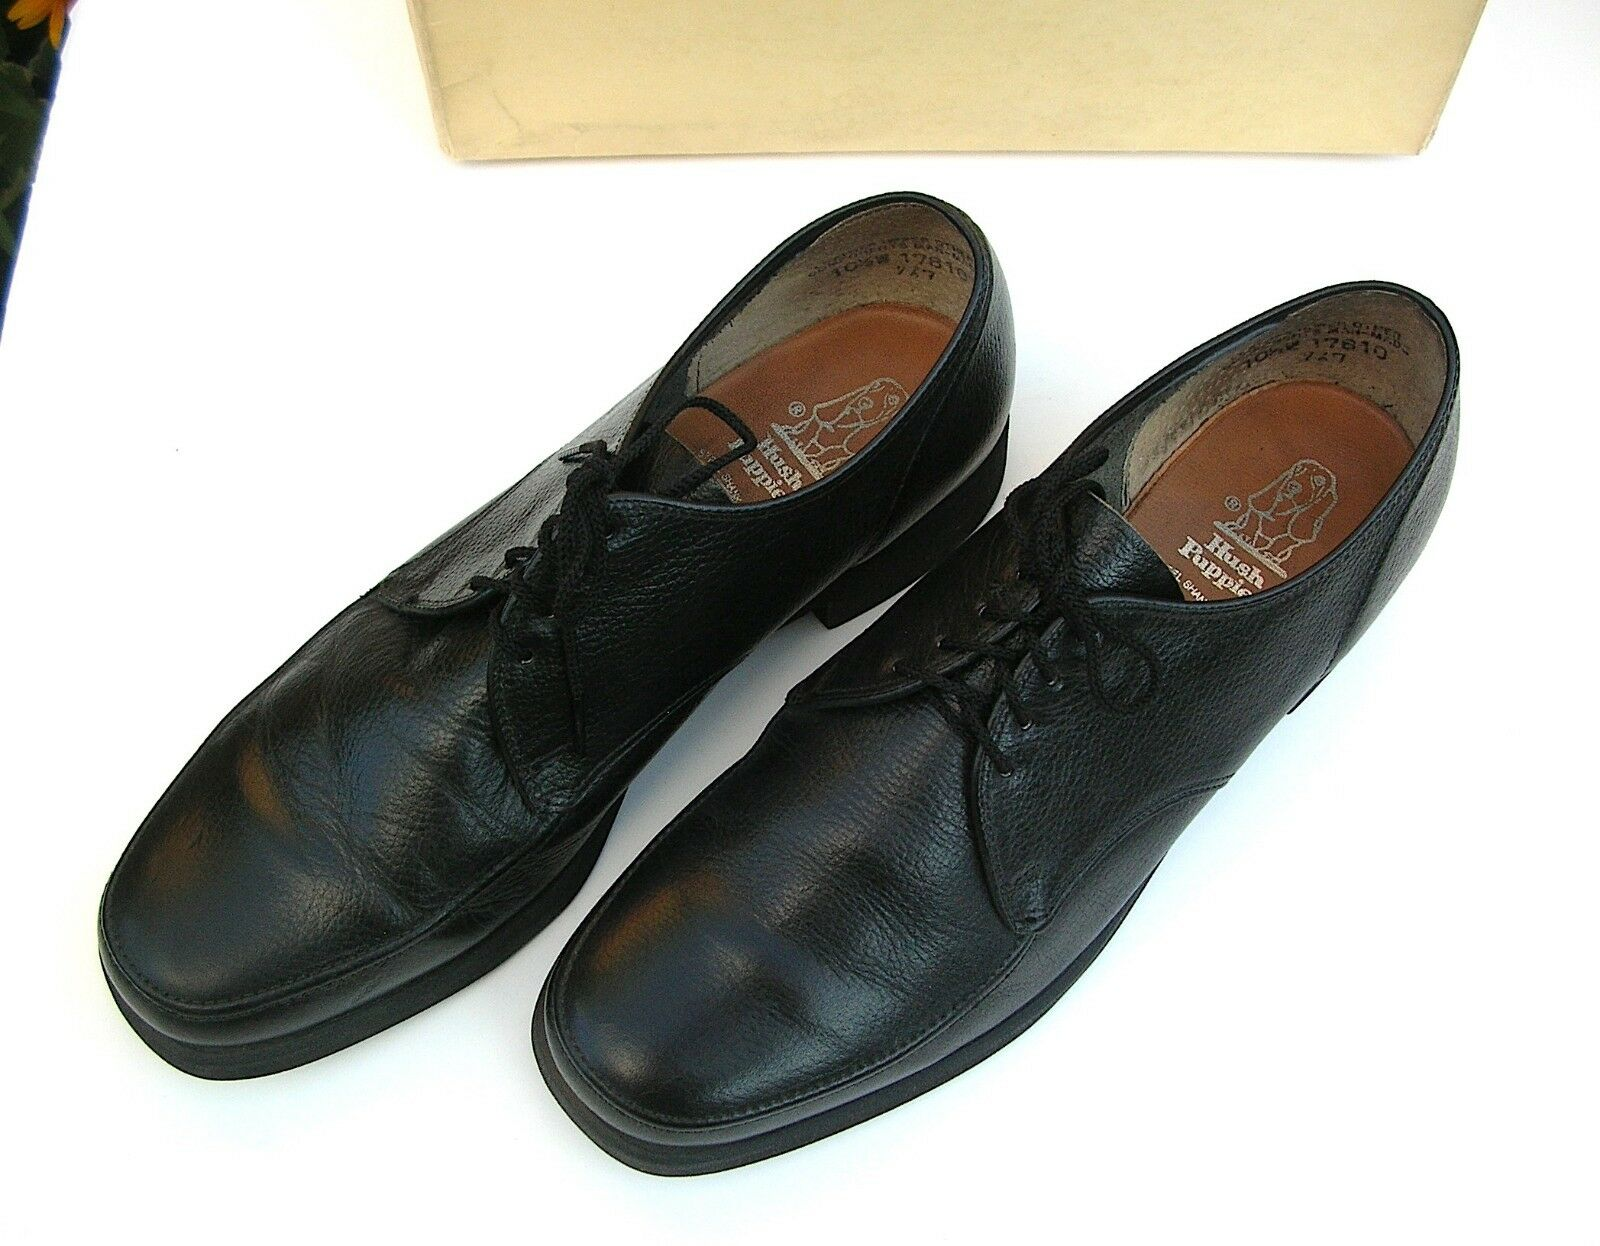 HUSH PUPPIES Vintage USA made - Black Leather Oxford Steel Shank -10 1 2W 10.5W